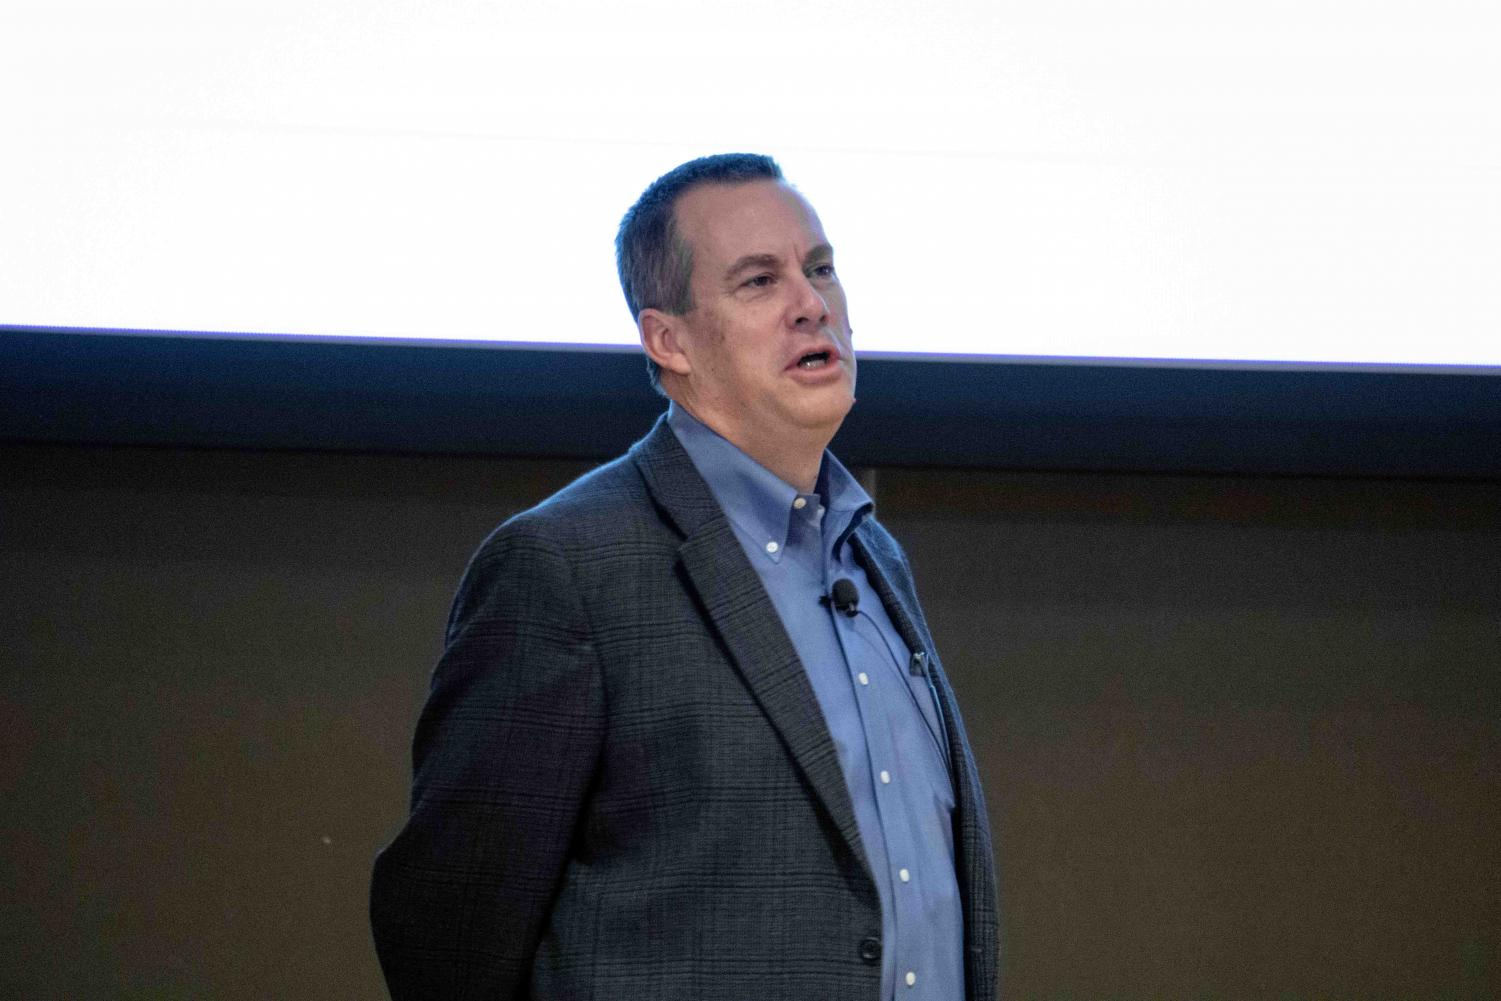 Bill Drake, the Assistant Athletic Director of Athletics and Student Athlete Wellness at Gonzaga Universtiy, delivered a talk on mental health on Monday, Jan 27. Photo by Amara Garibyan